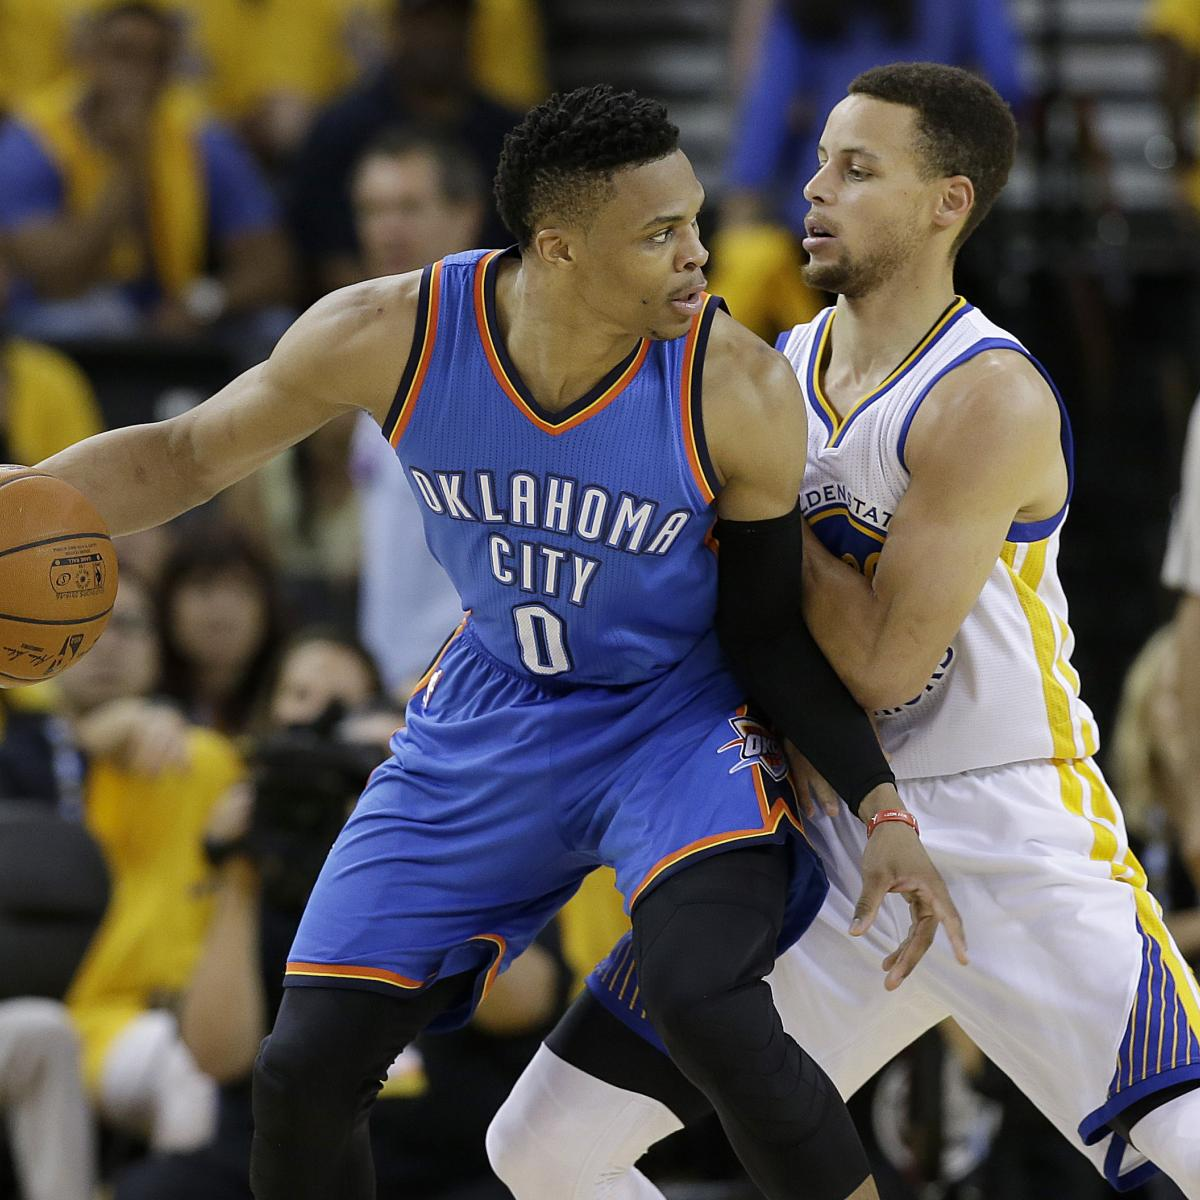 Thunder Vs. Warriors Game 7 Was NBA's Highest-Rated Game